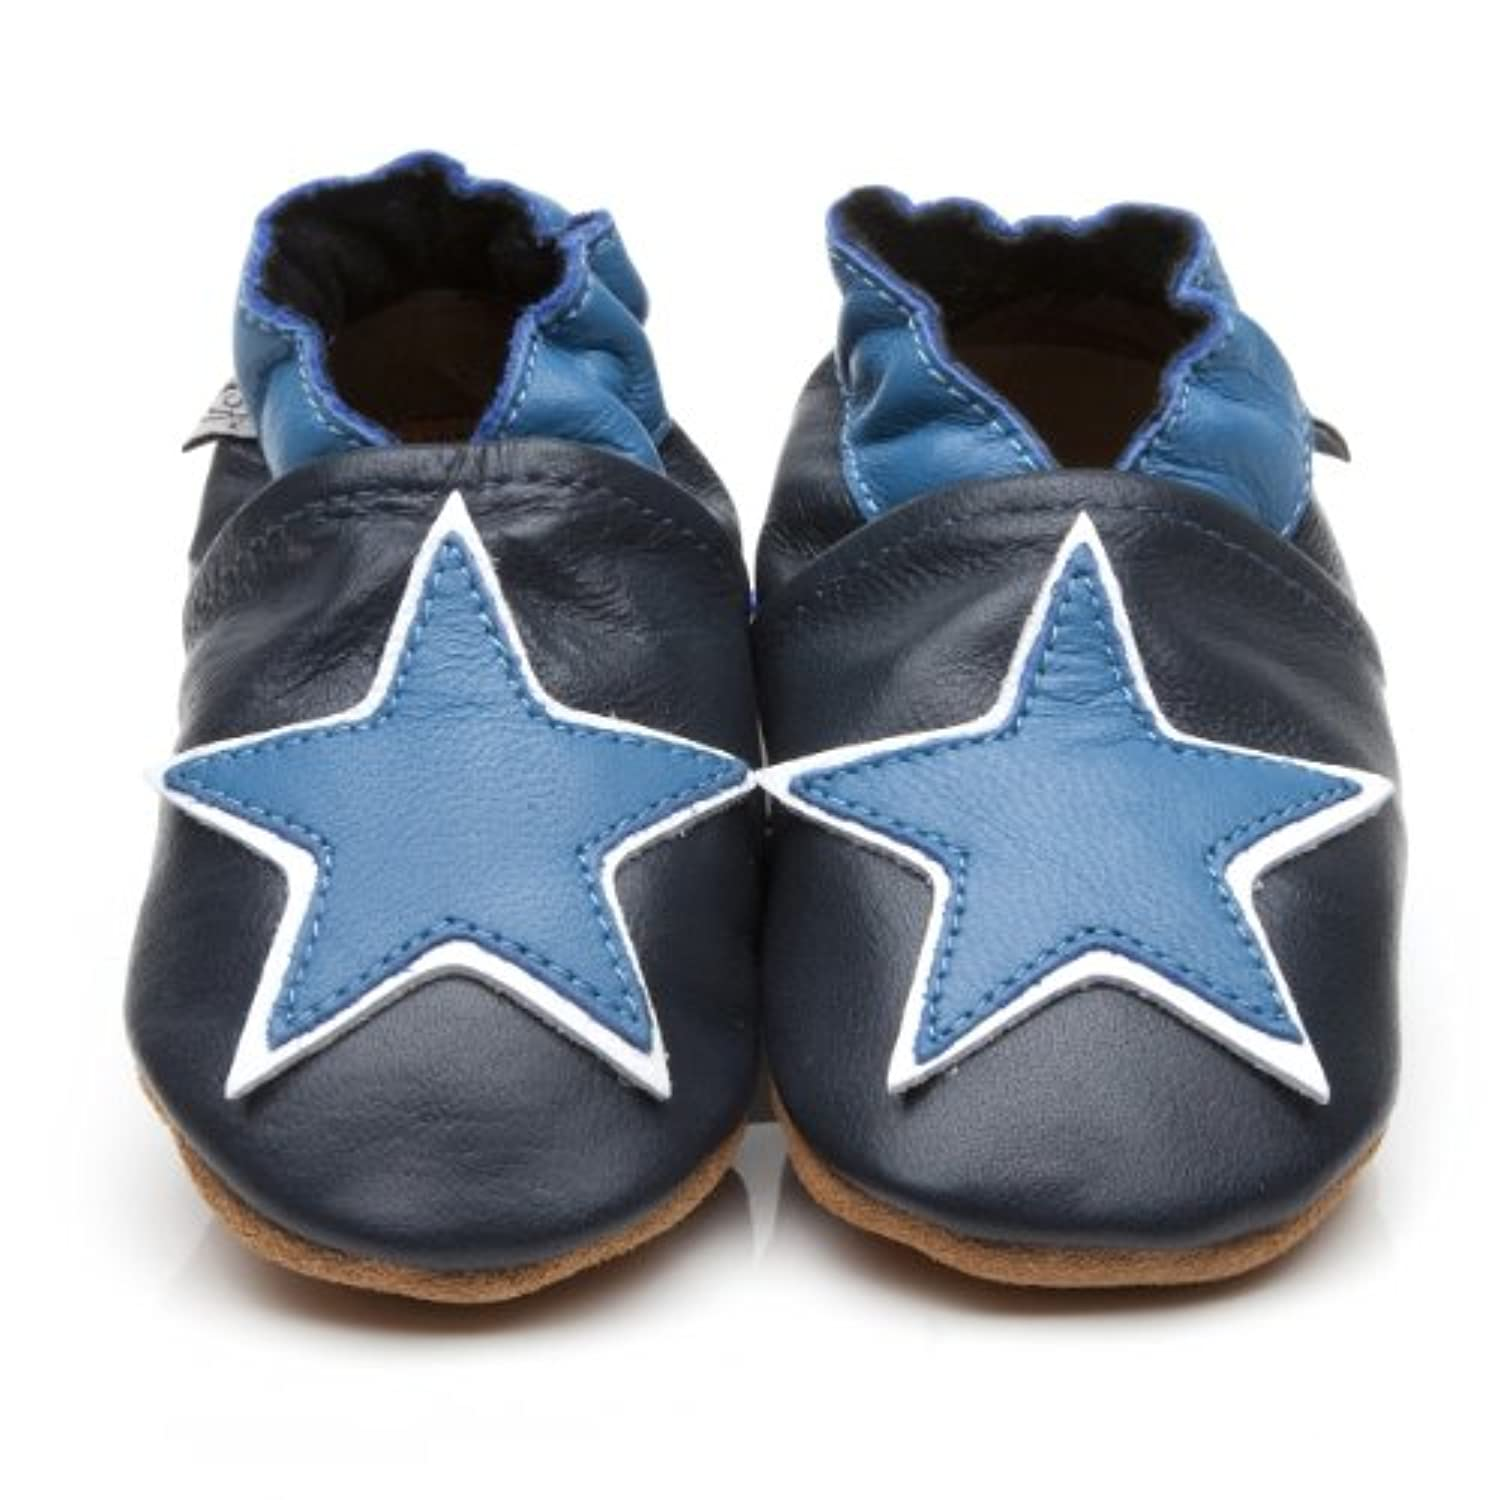 Soft Leather Baby Shoes Blue Star [ソフトレザーベビーシューズブルースター] 3-4 years (16.5 cm)